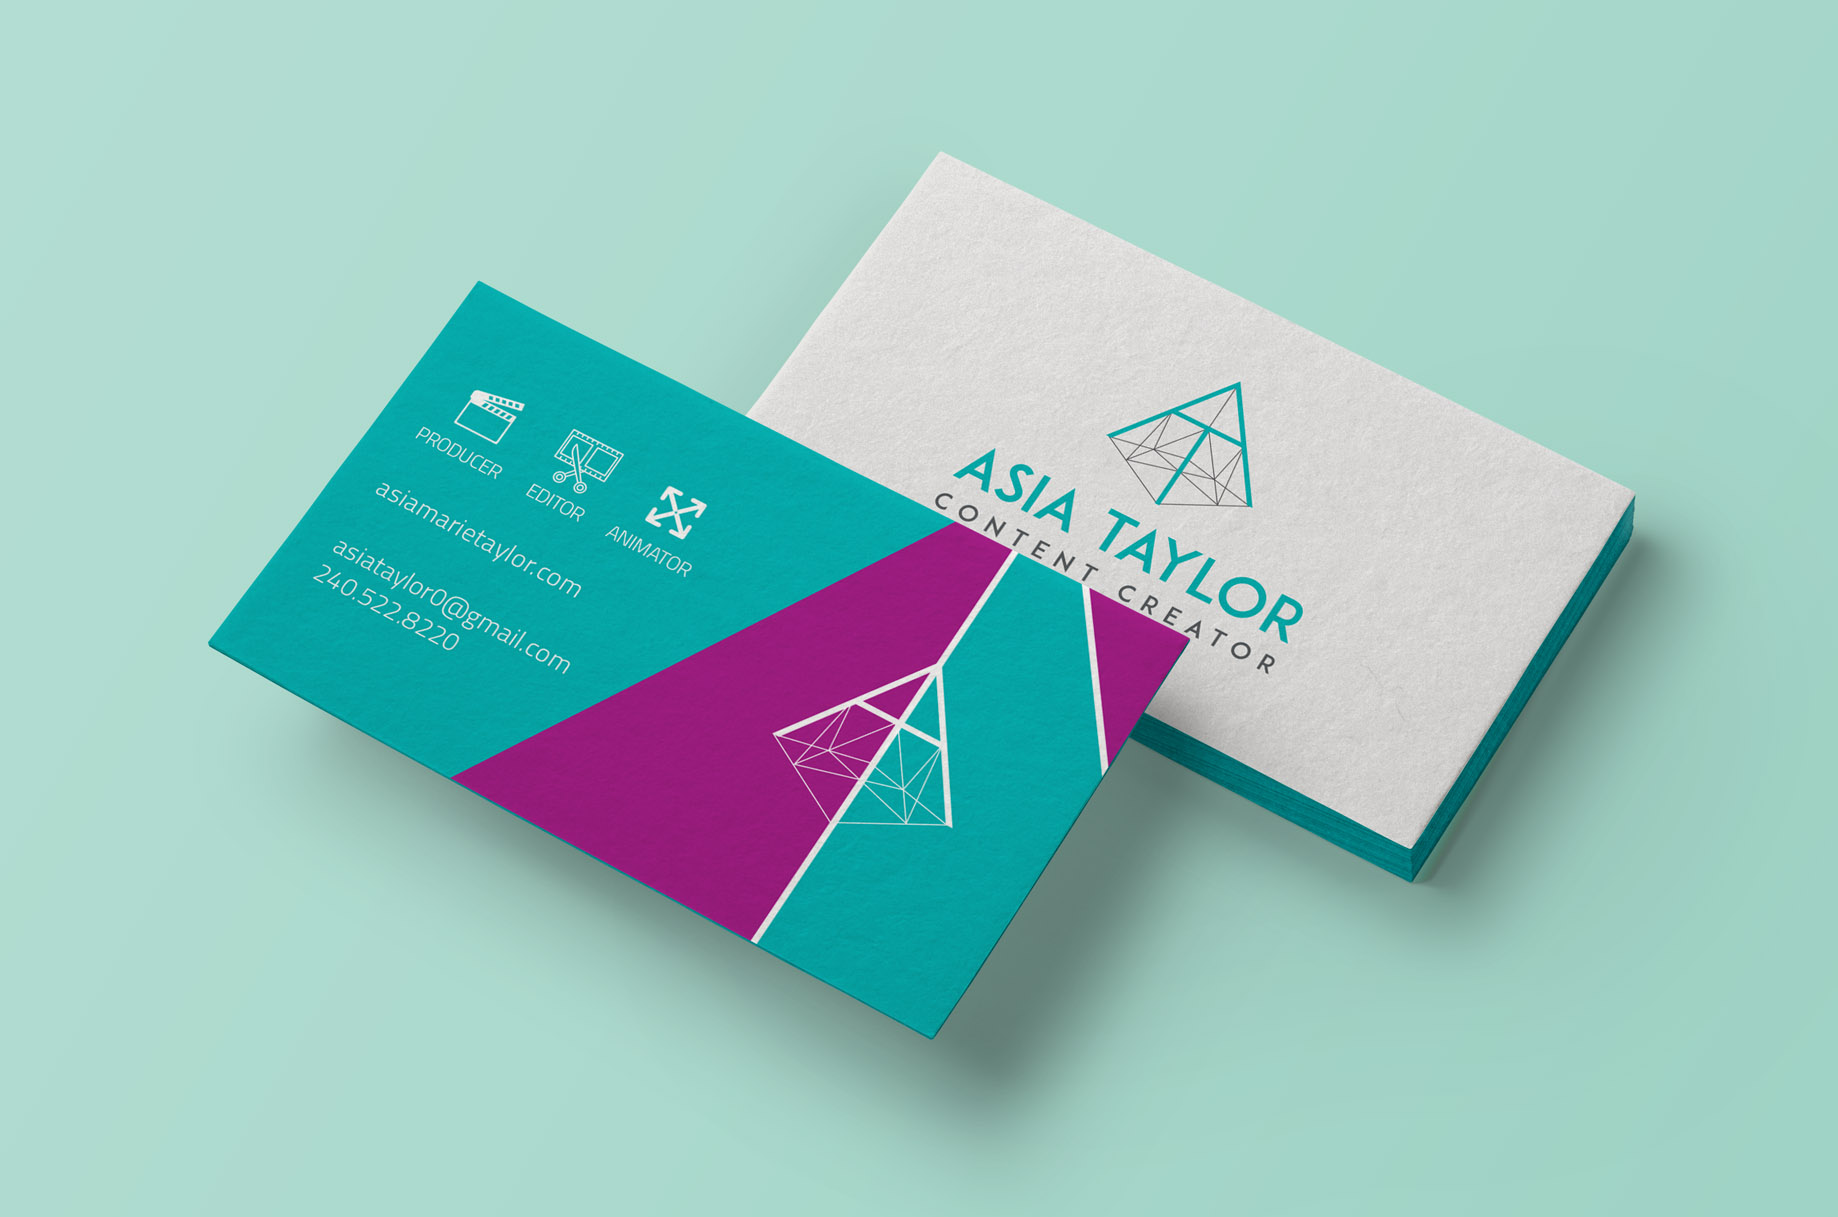 Branding_Asia_Taylor_business_card.jpg